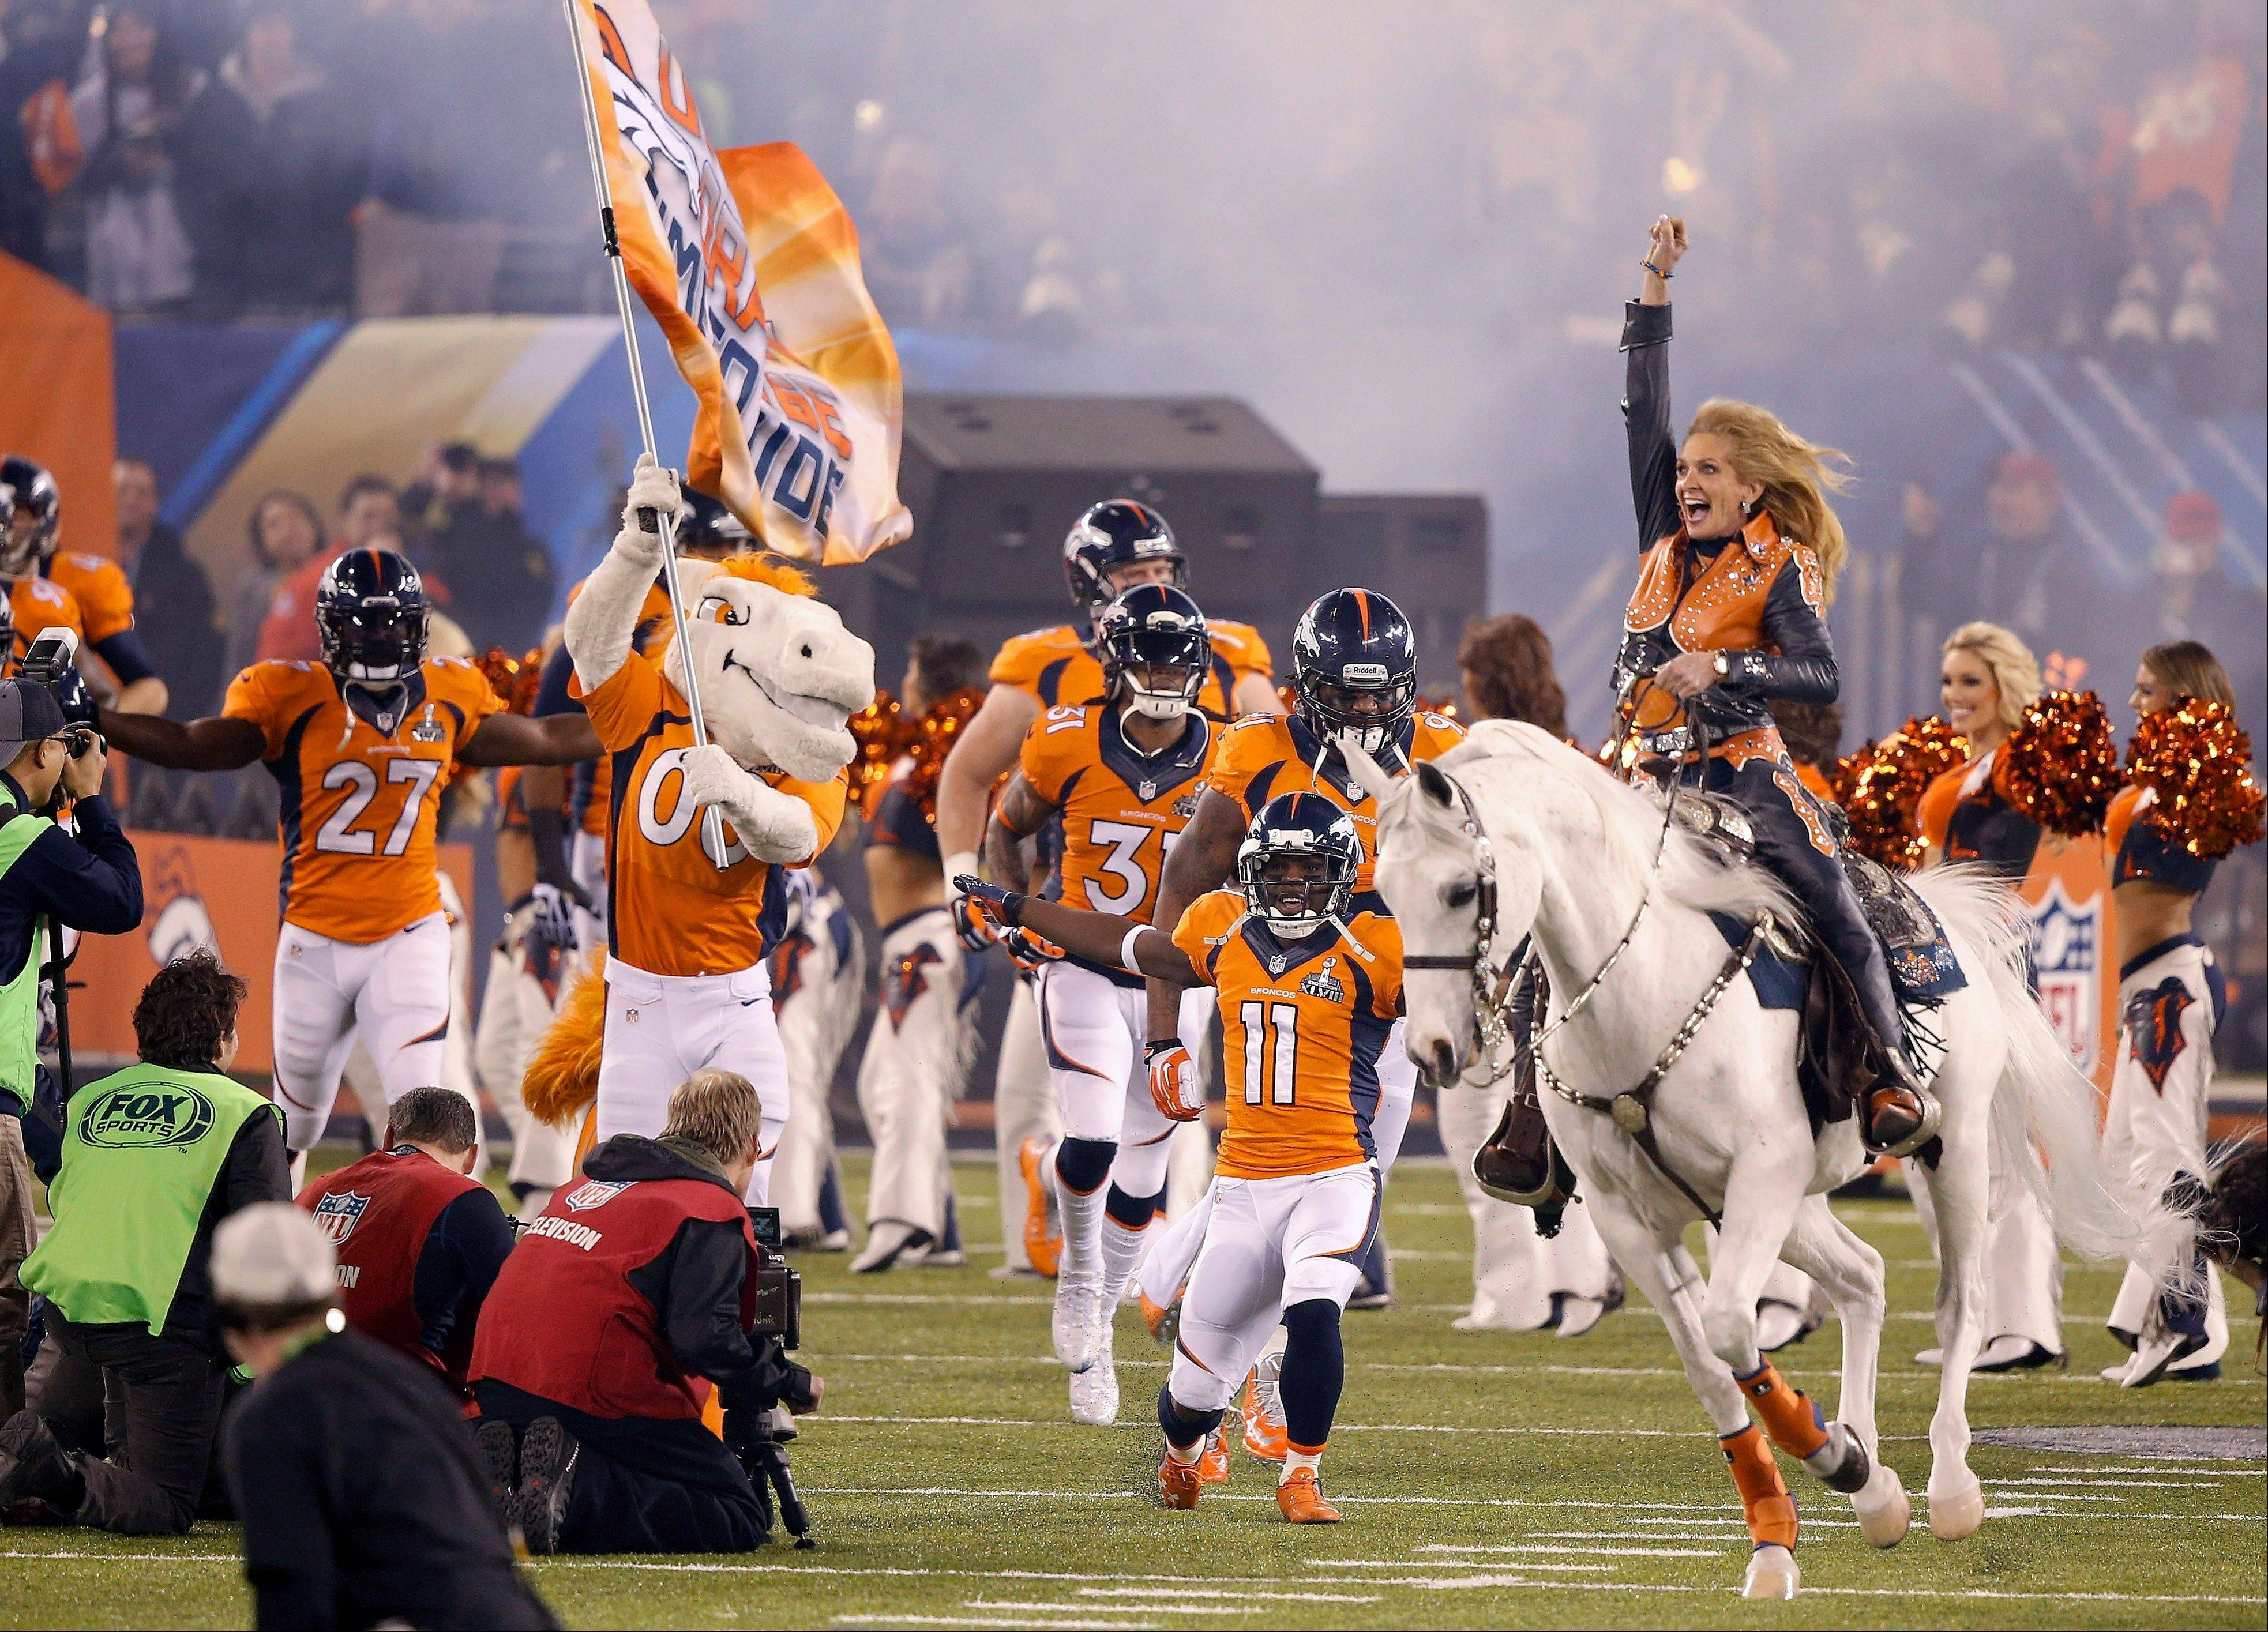 Thunder leads the Denver Broncos players onto the field before the NFL Super Bowl XLVIII football game.